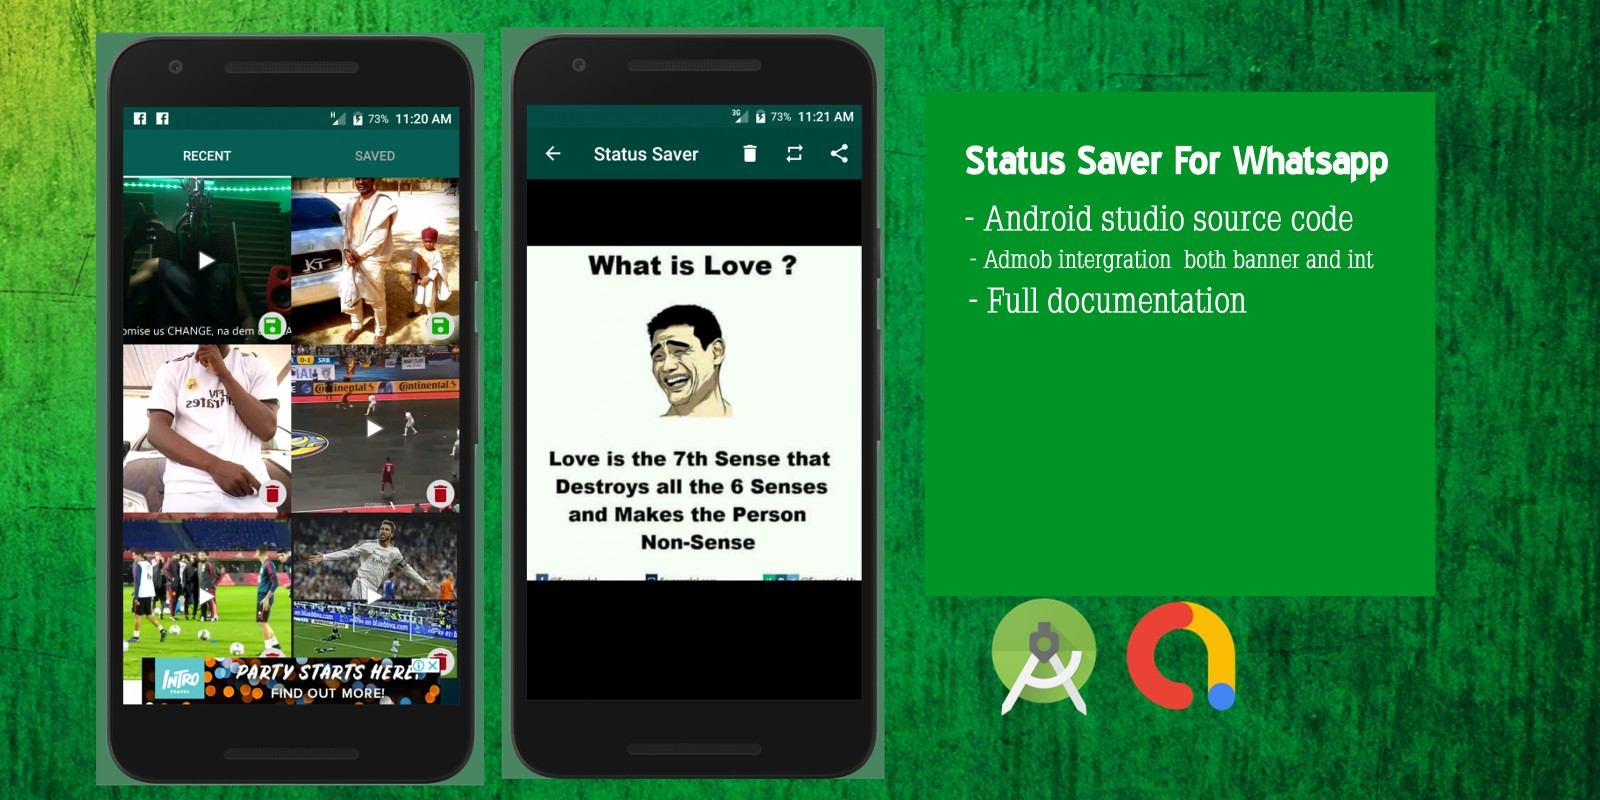 Status Saver For Whatsapp - Android App